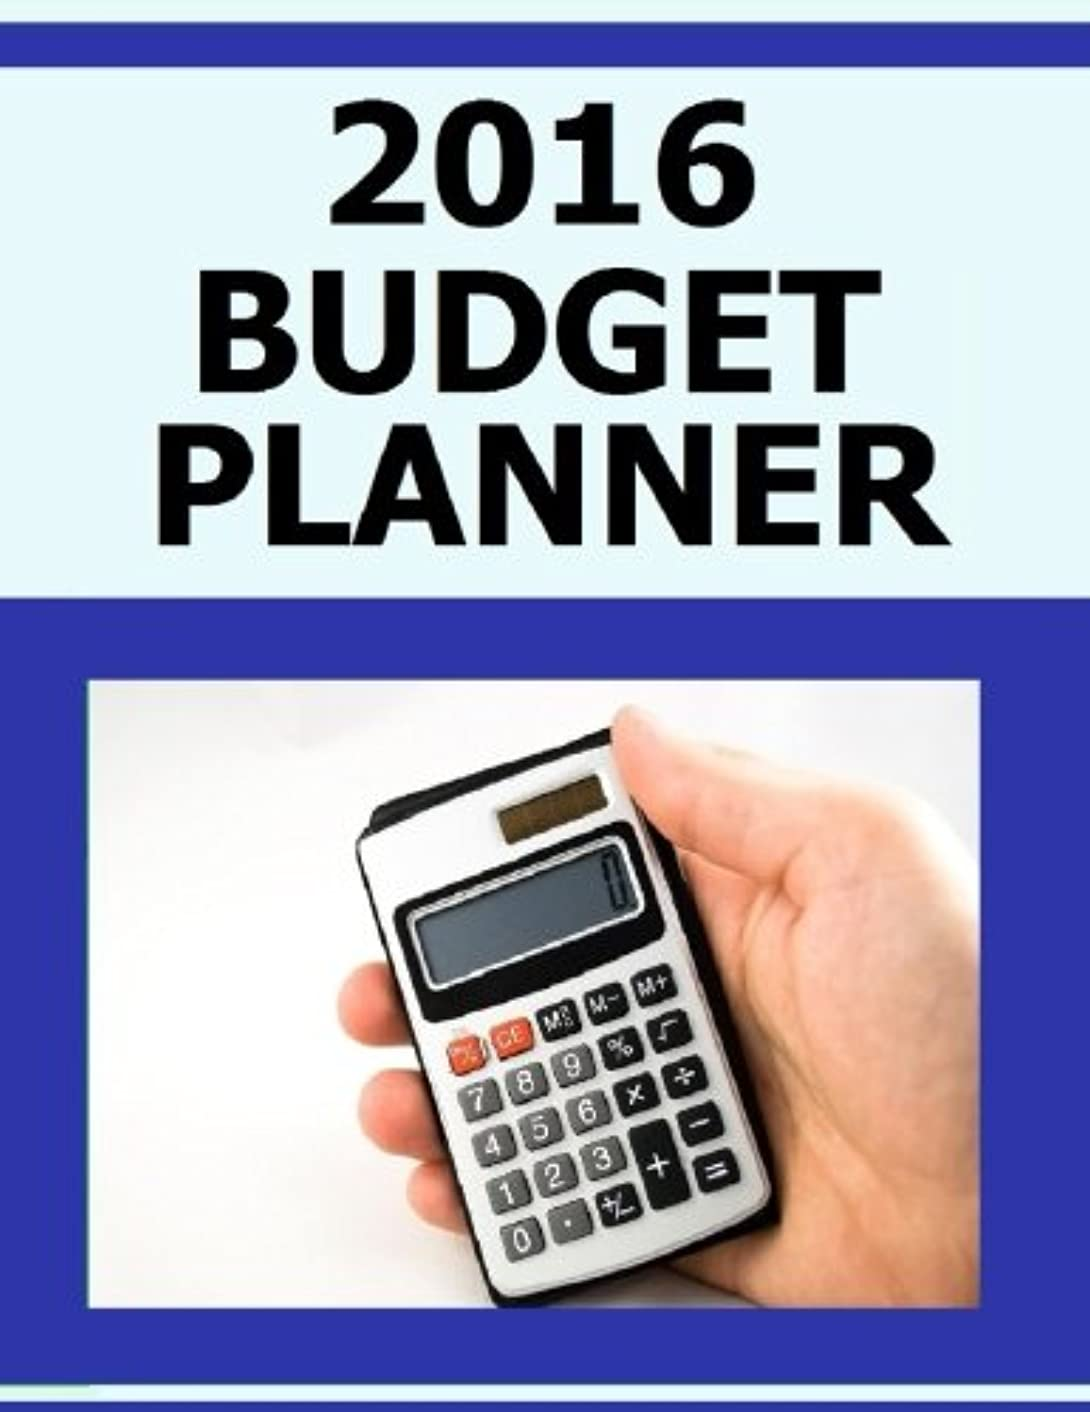 2016 Budget Planner: Blank Budget Planner for 2016 - Assess your income, expenses and money management.